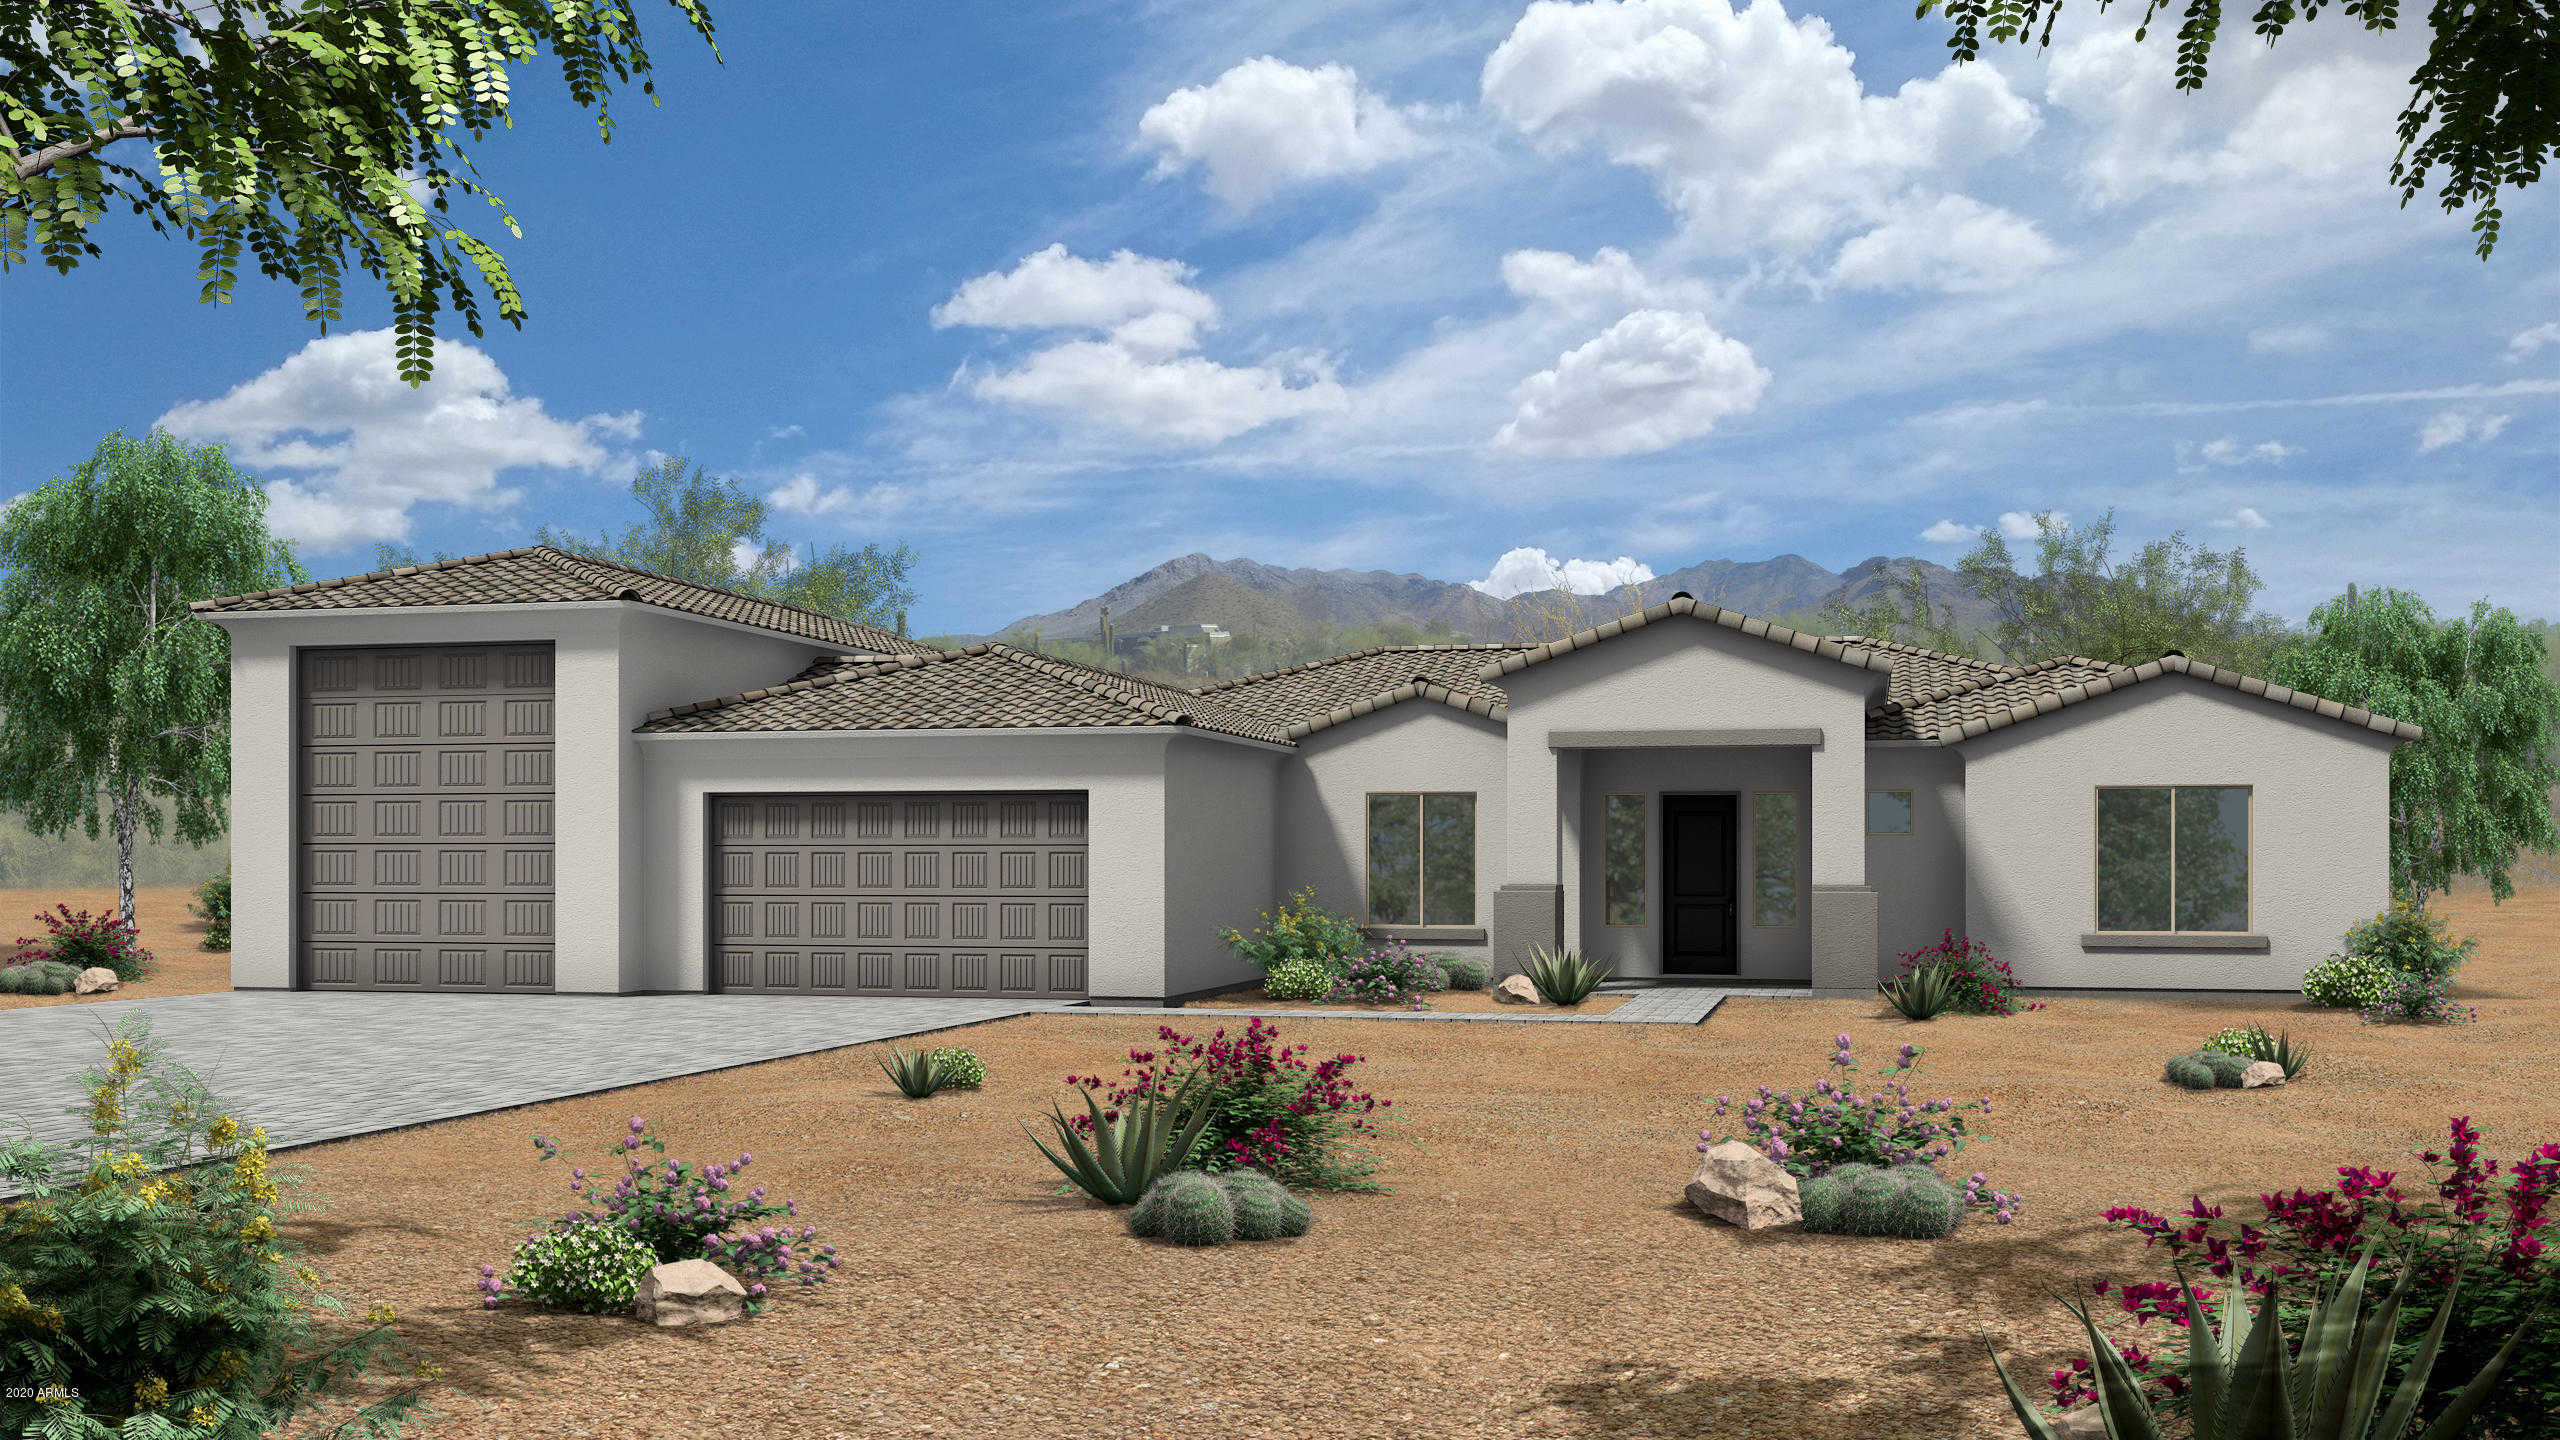 $660,000 - 4Br/4Ba - Home for Sale in None, Phoenix